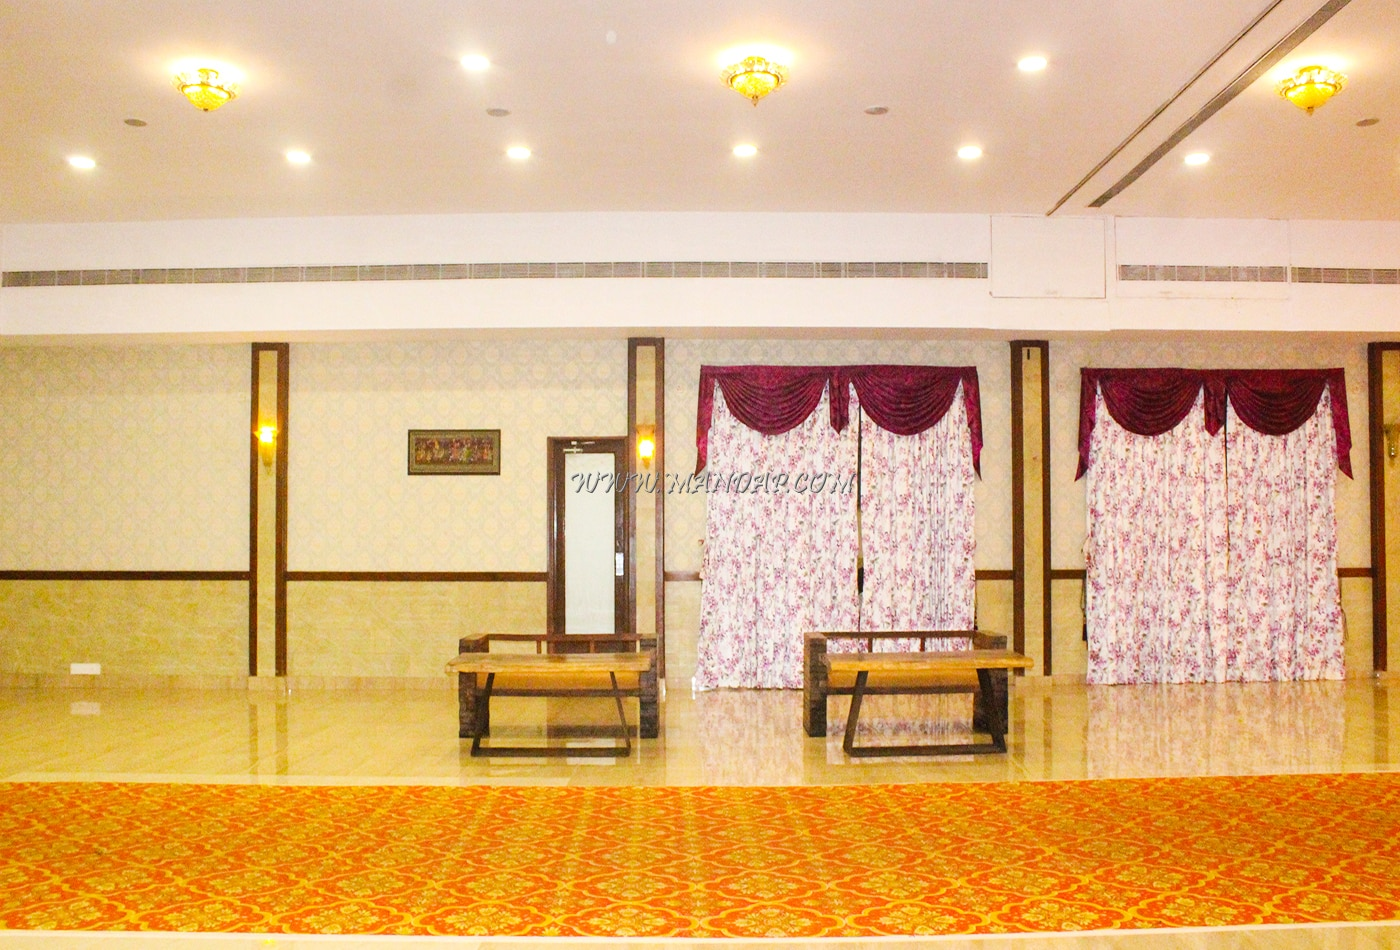 Find the availability of the Megarugas Ceremony Banquet Hall 2 (A/C) in Andheri East, Mumbai and avail special offers